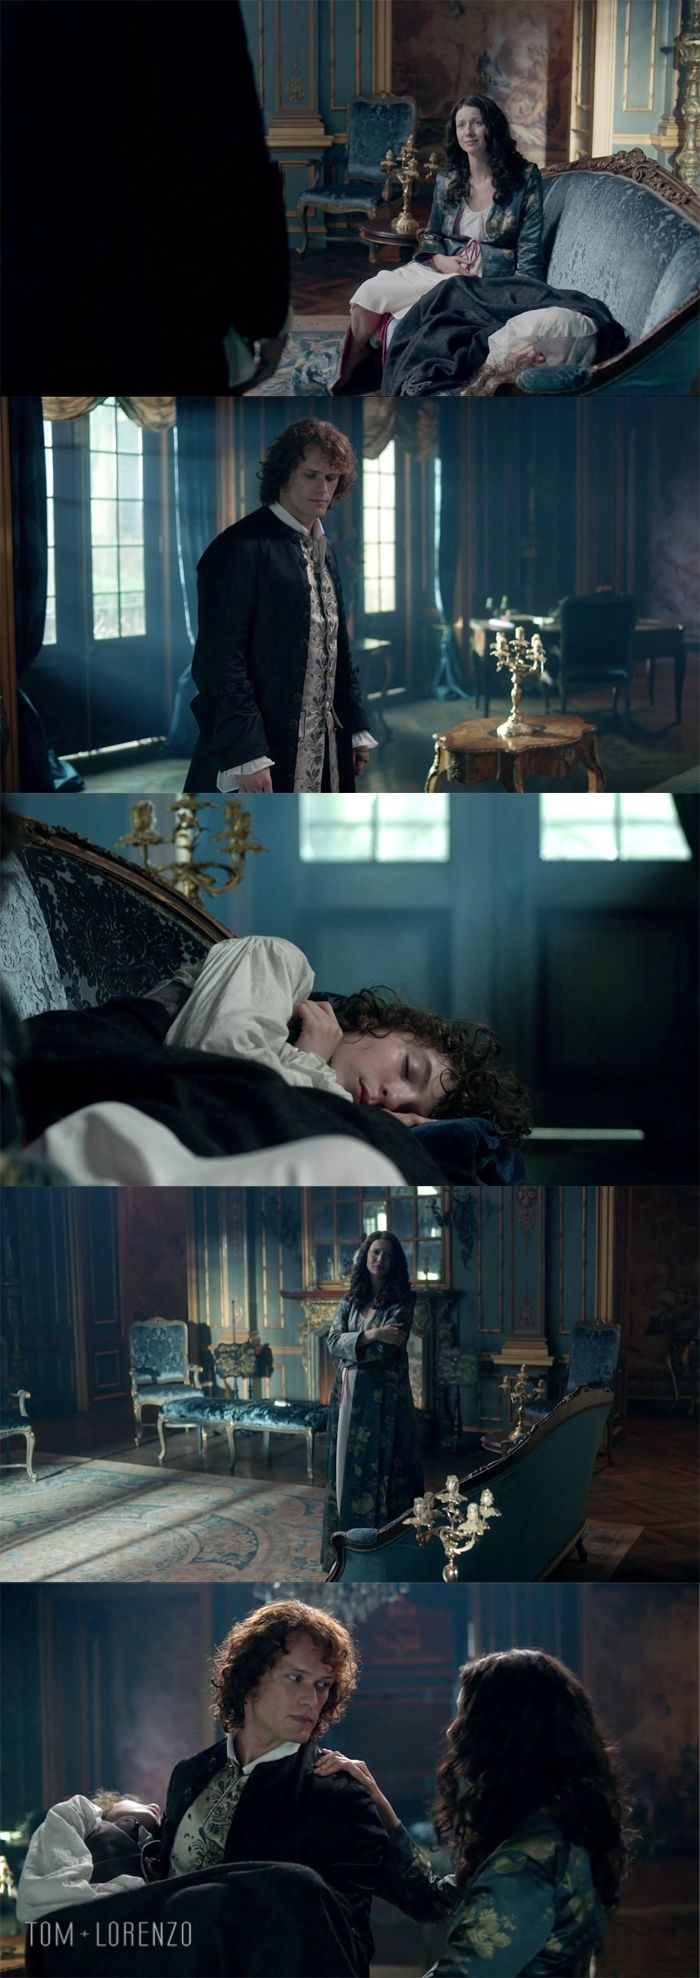 Outlander-Style-Season-2-Episode-5-TV-Series-Startz-Costumes-Terry-Dresbach-Tom-Lorenzo-Site (2)